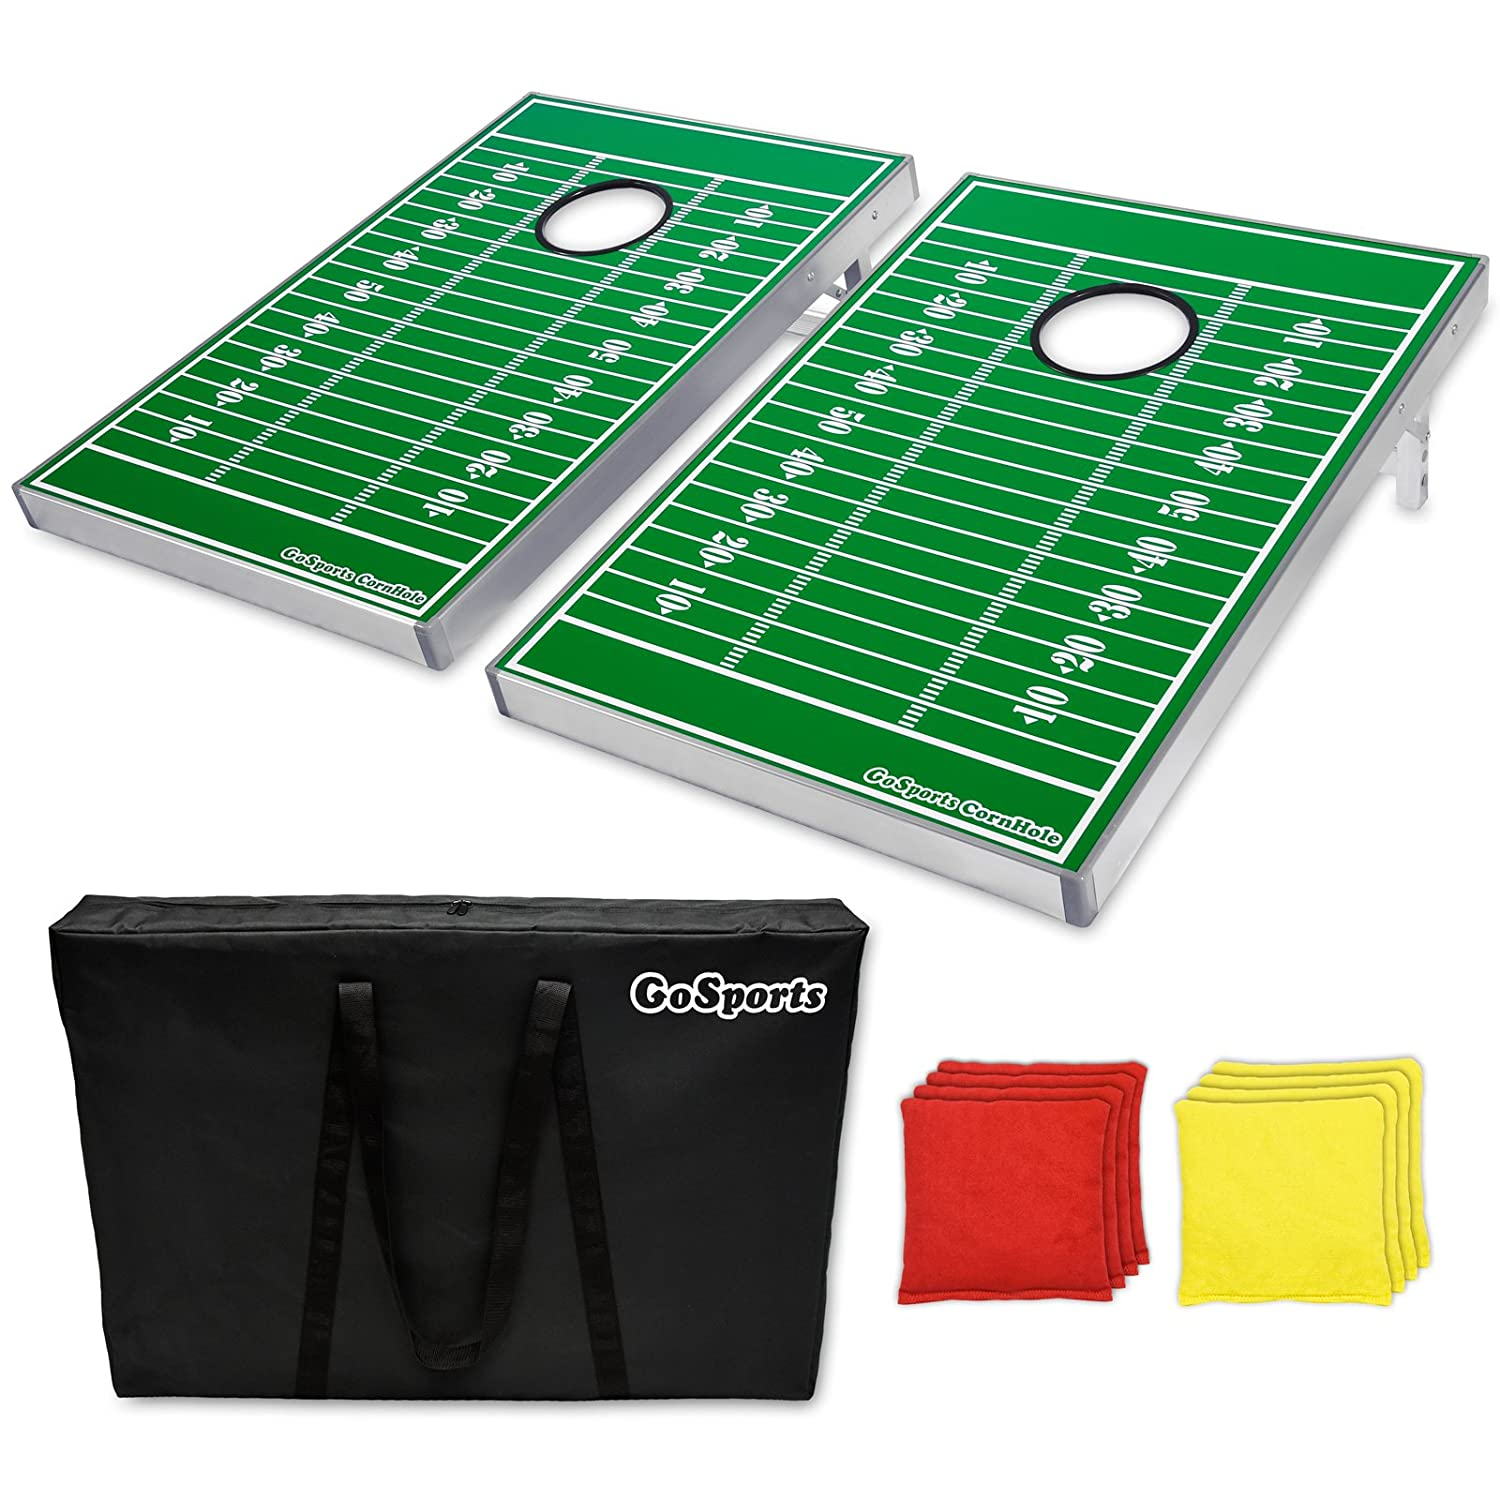 Gosports Cornhole Bean Bag Toss